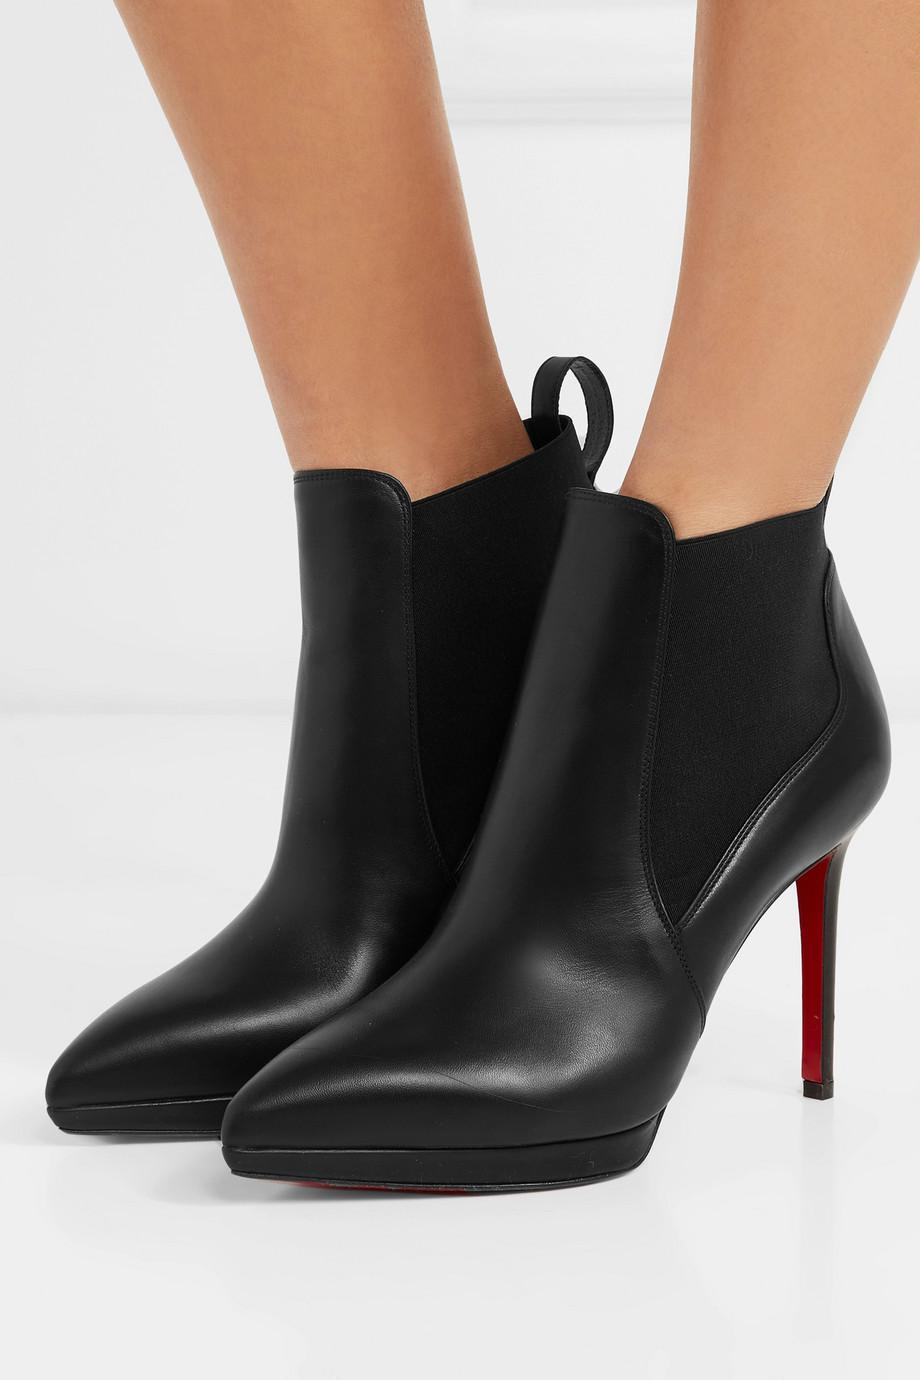 7a71e3002c91 ... top quality christian louboutin black crochinetta 100 leather ankle  boots lyst. view fullscreen 04279 08722